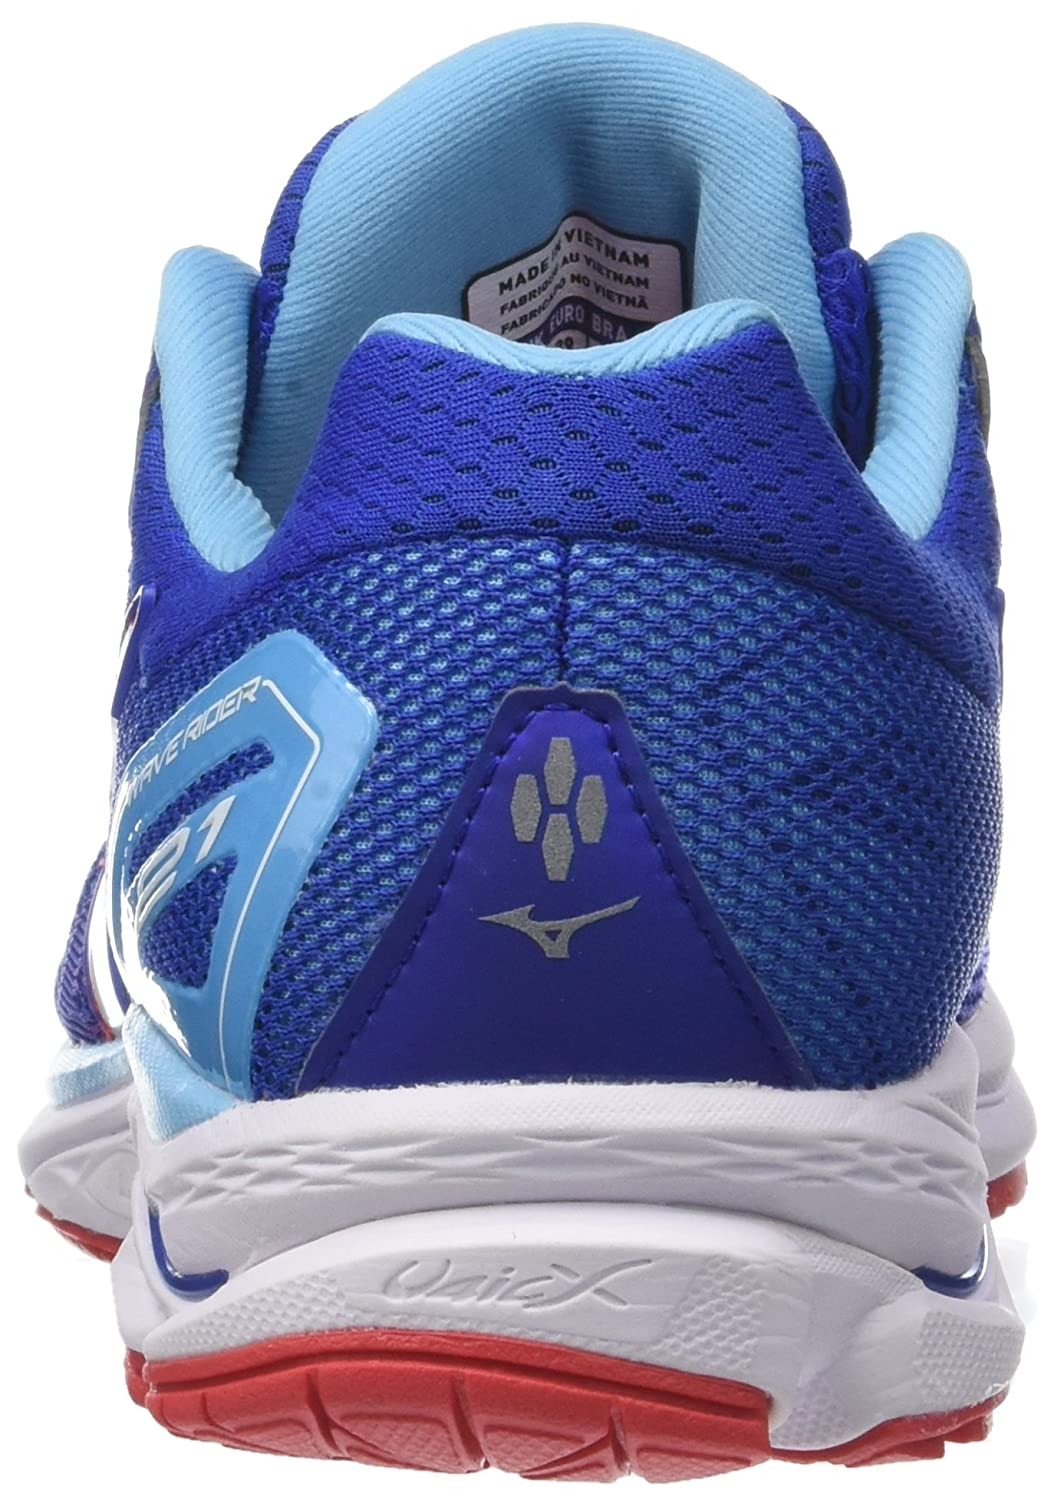 new products fdec9 54a78 Mizuno Men s Wave Rider 21 Running Shoes  Amazon.co.uk  Shoes   Bags